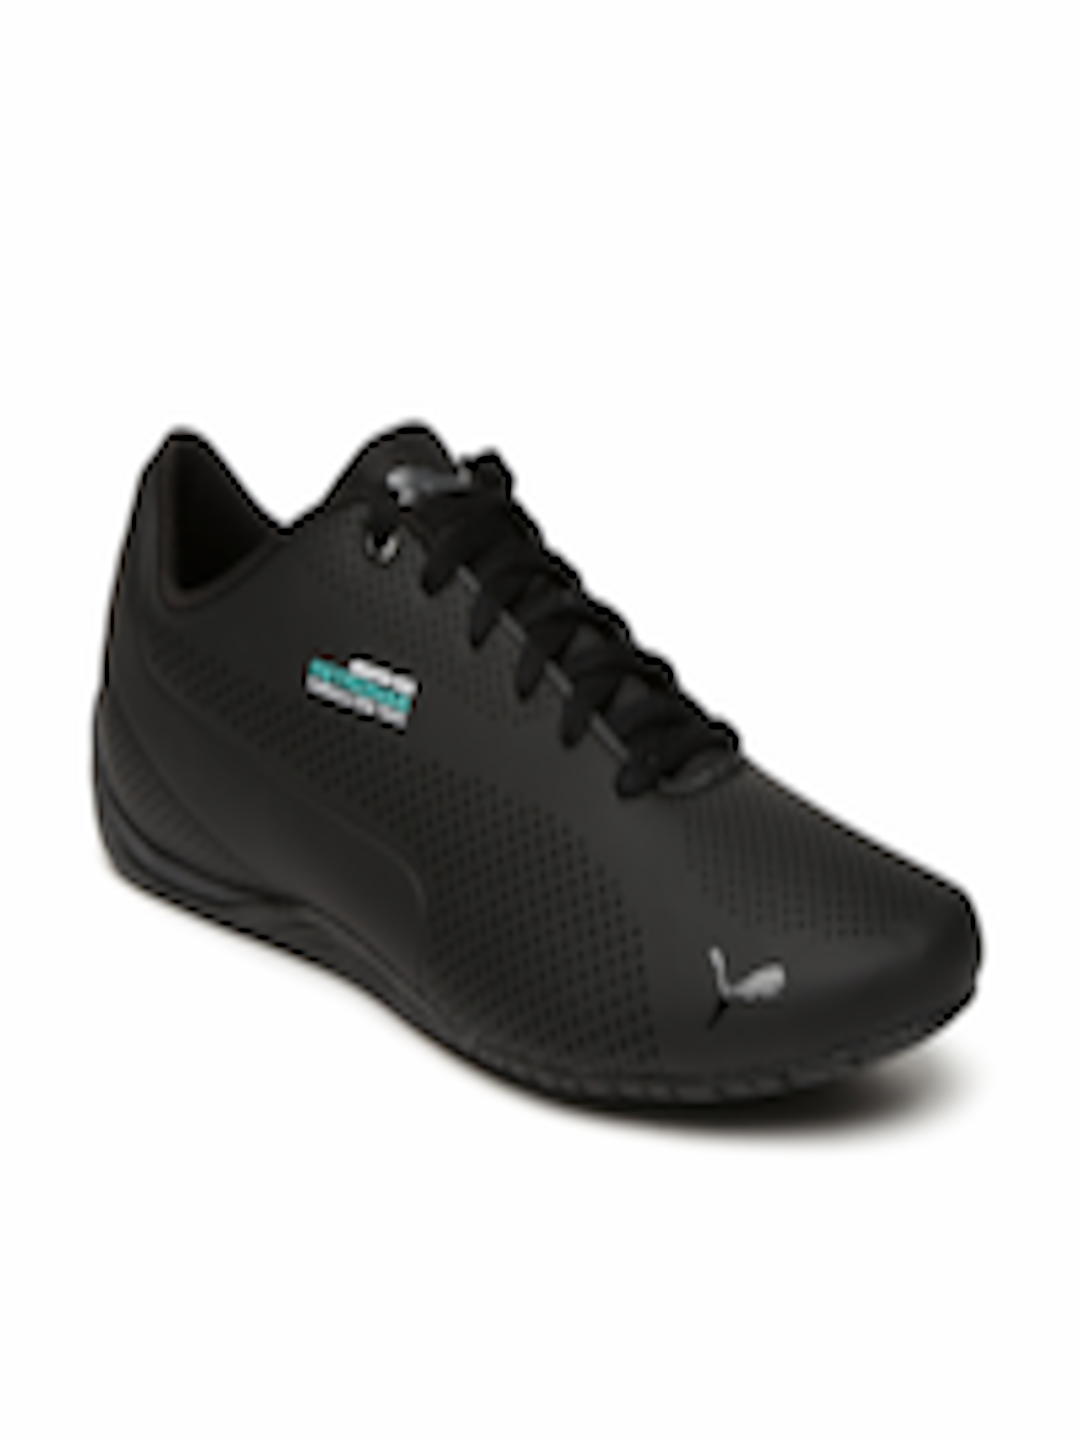 Buy Puma Unisex Black Mercedes Drift Cat Ultra Sneakers - Casual Shoes for Unisex | Myntra